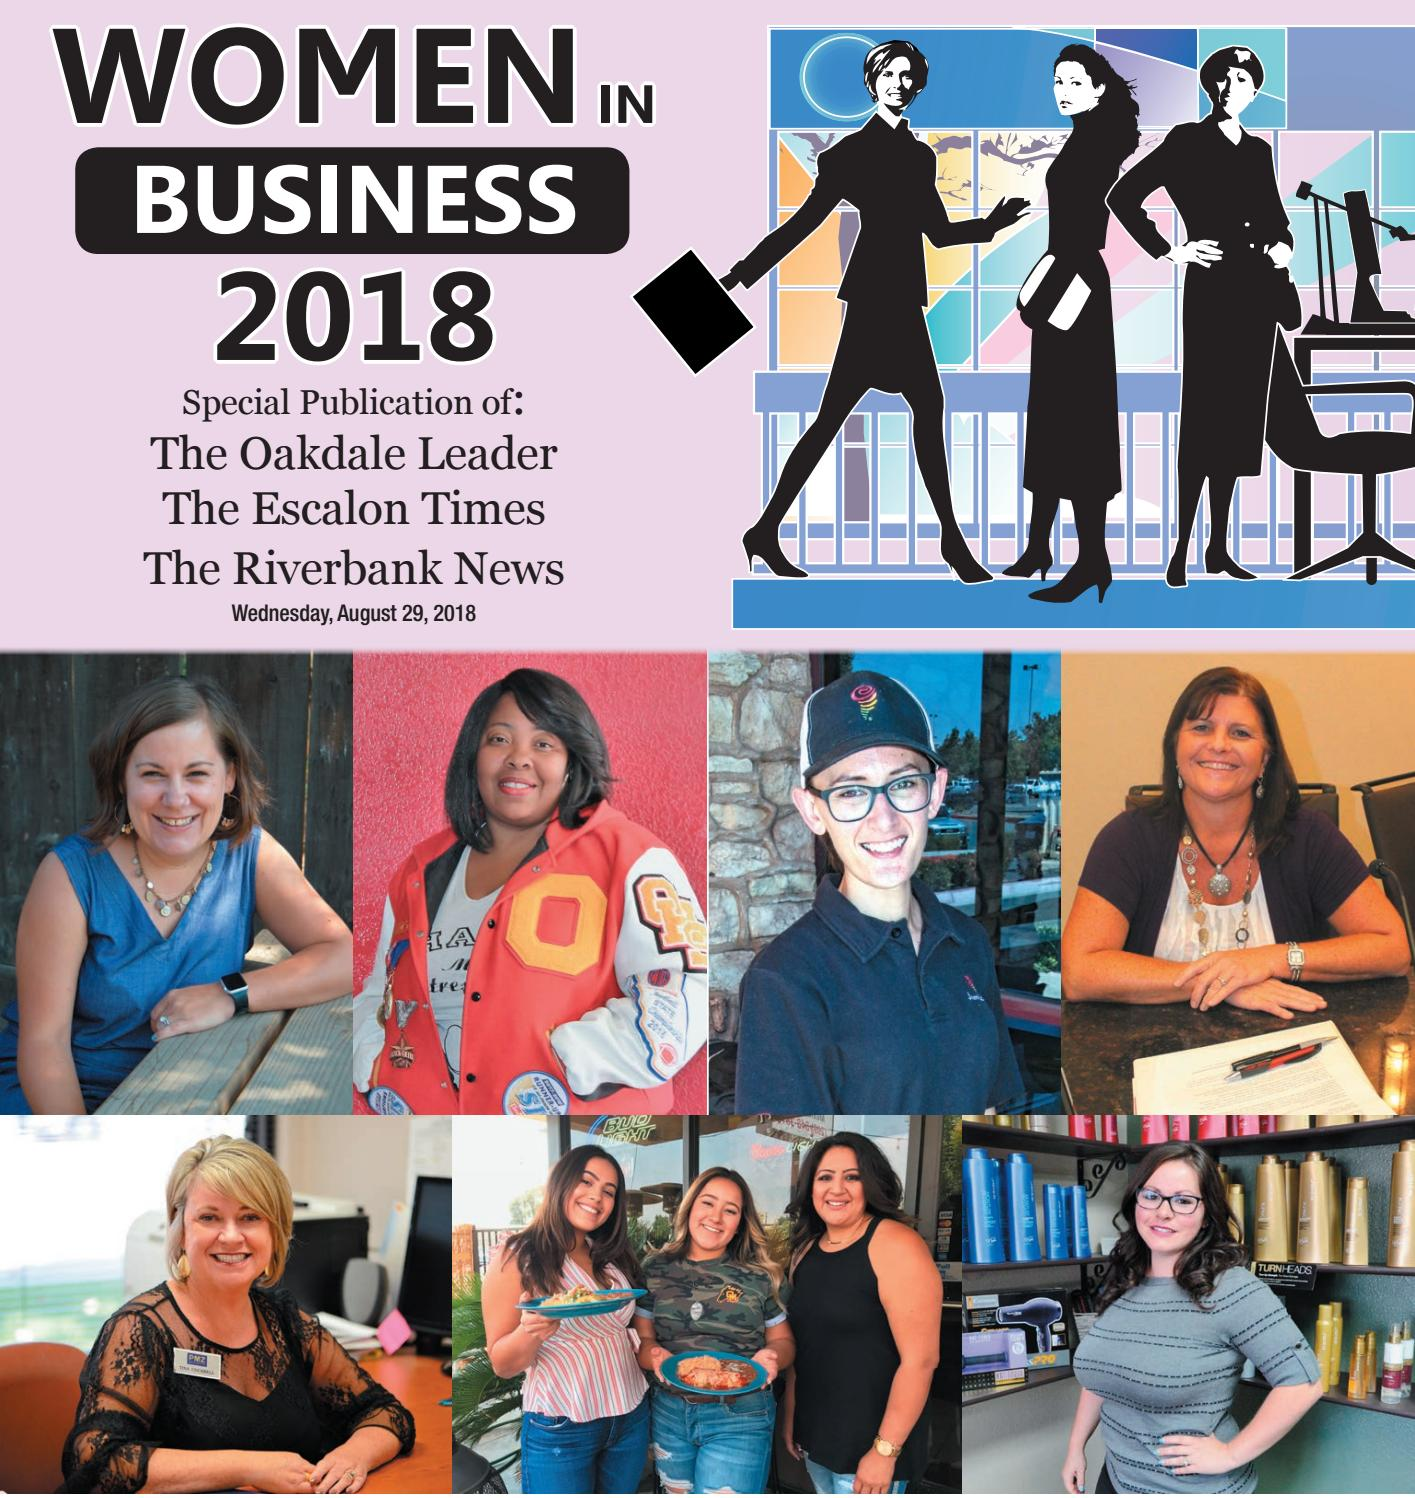 Women In Business 2018 by Manteca Bulletin - issuu